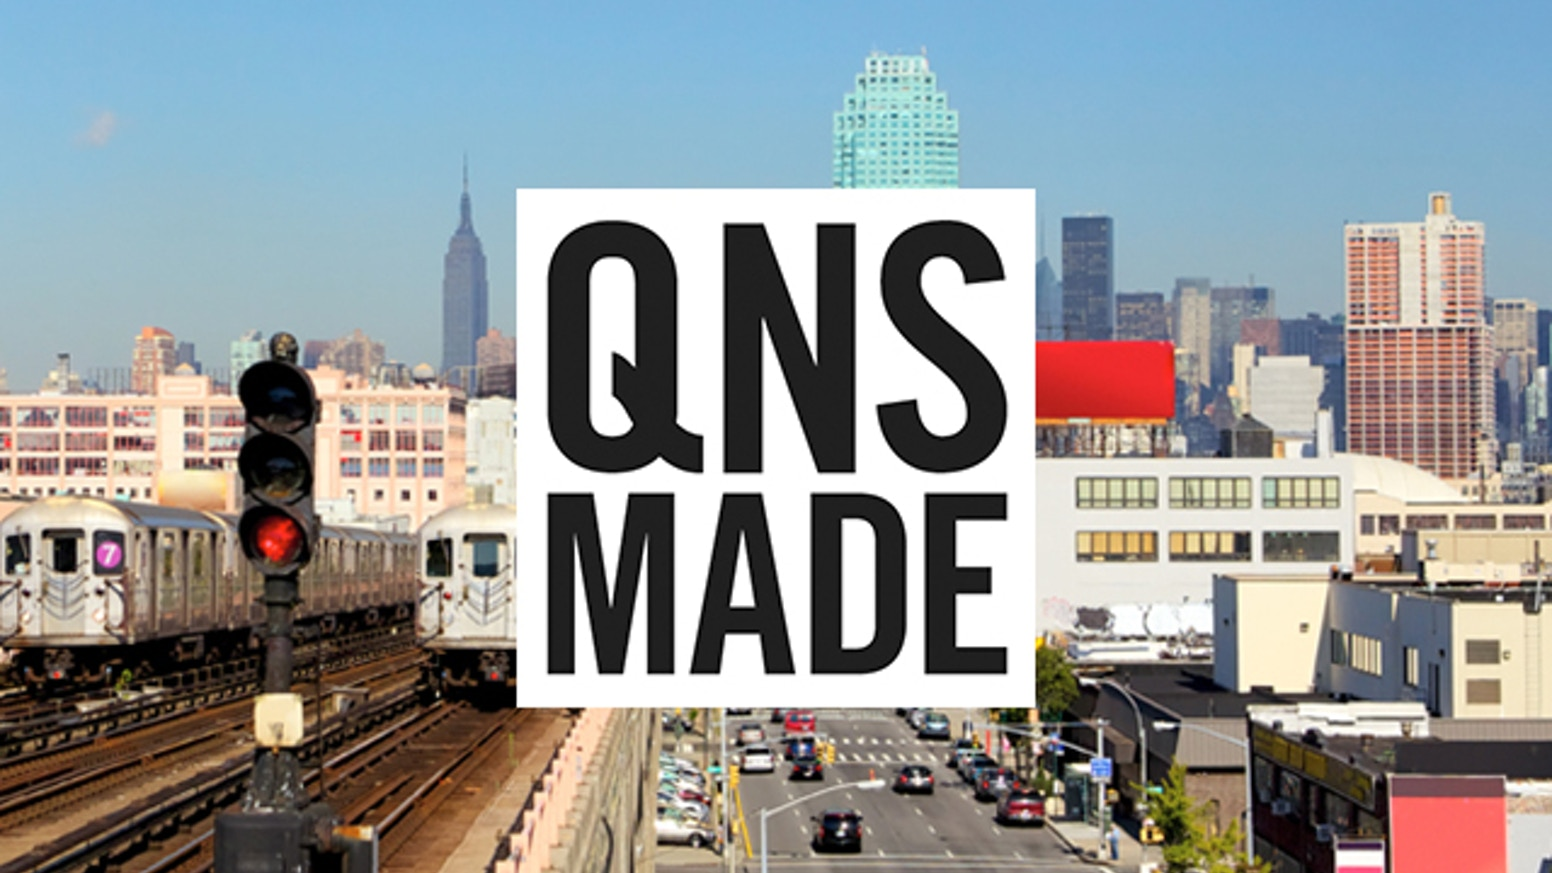 A design project dedicated to defining the borough of Queens through its people with interviews, photographs, and a resource directory.